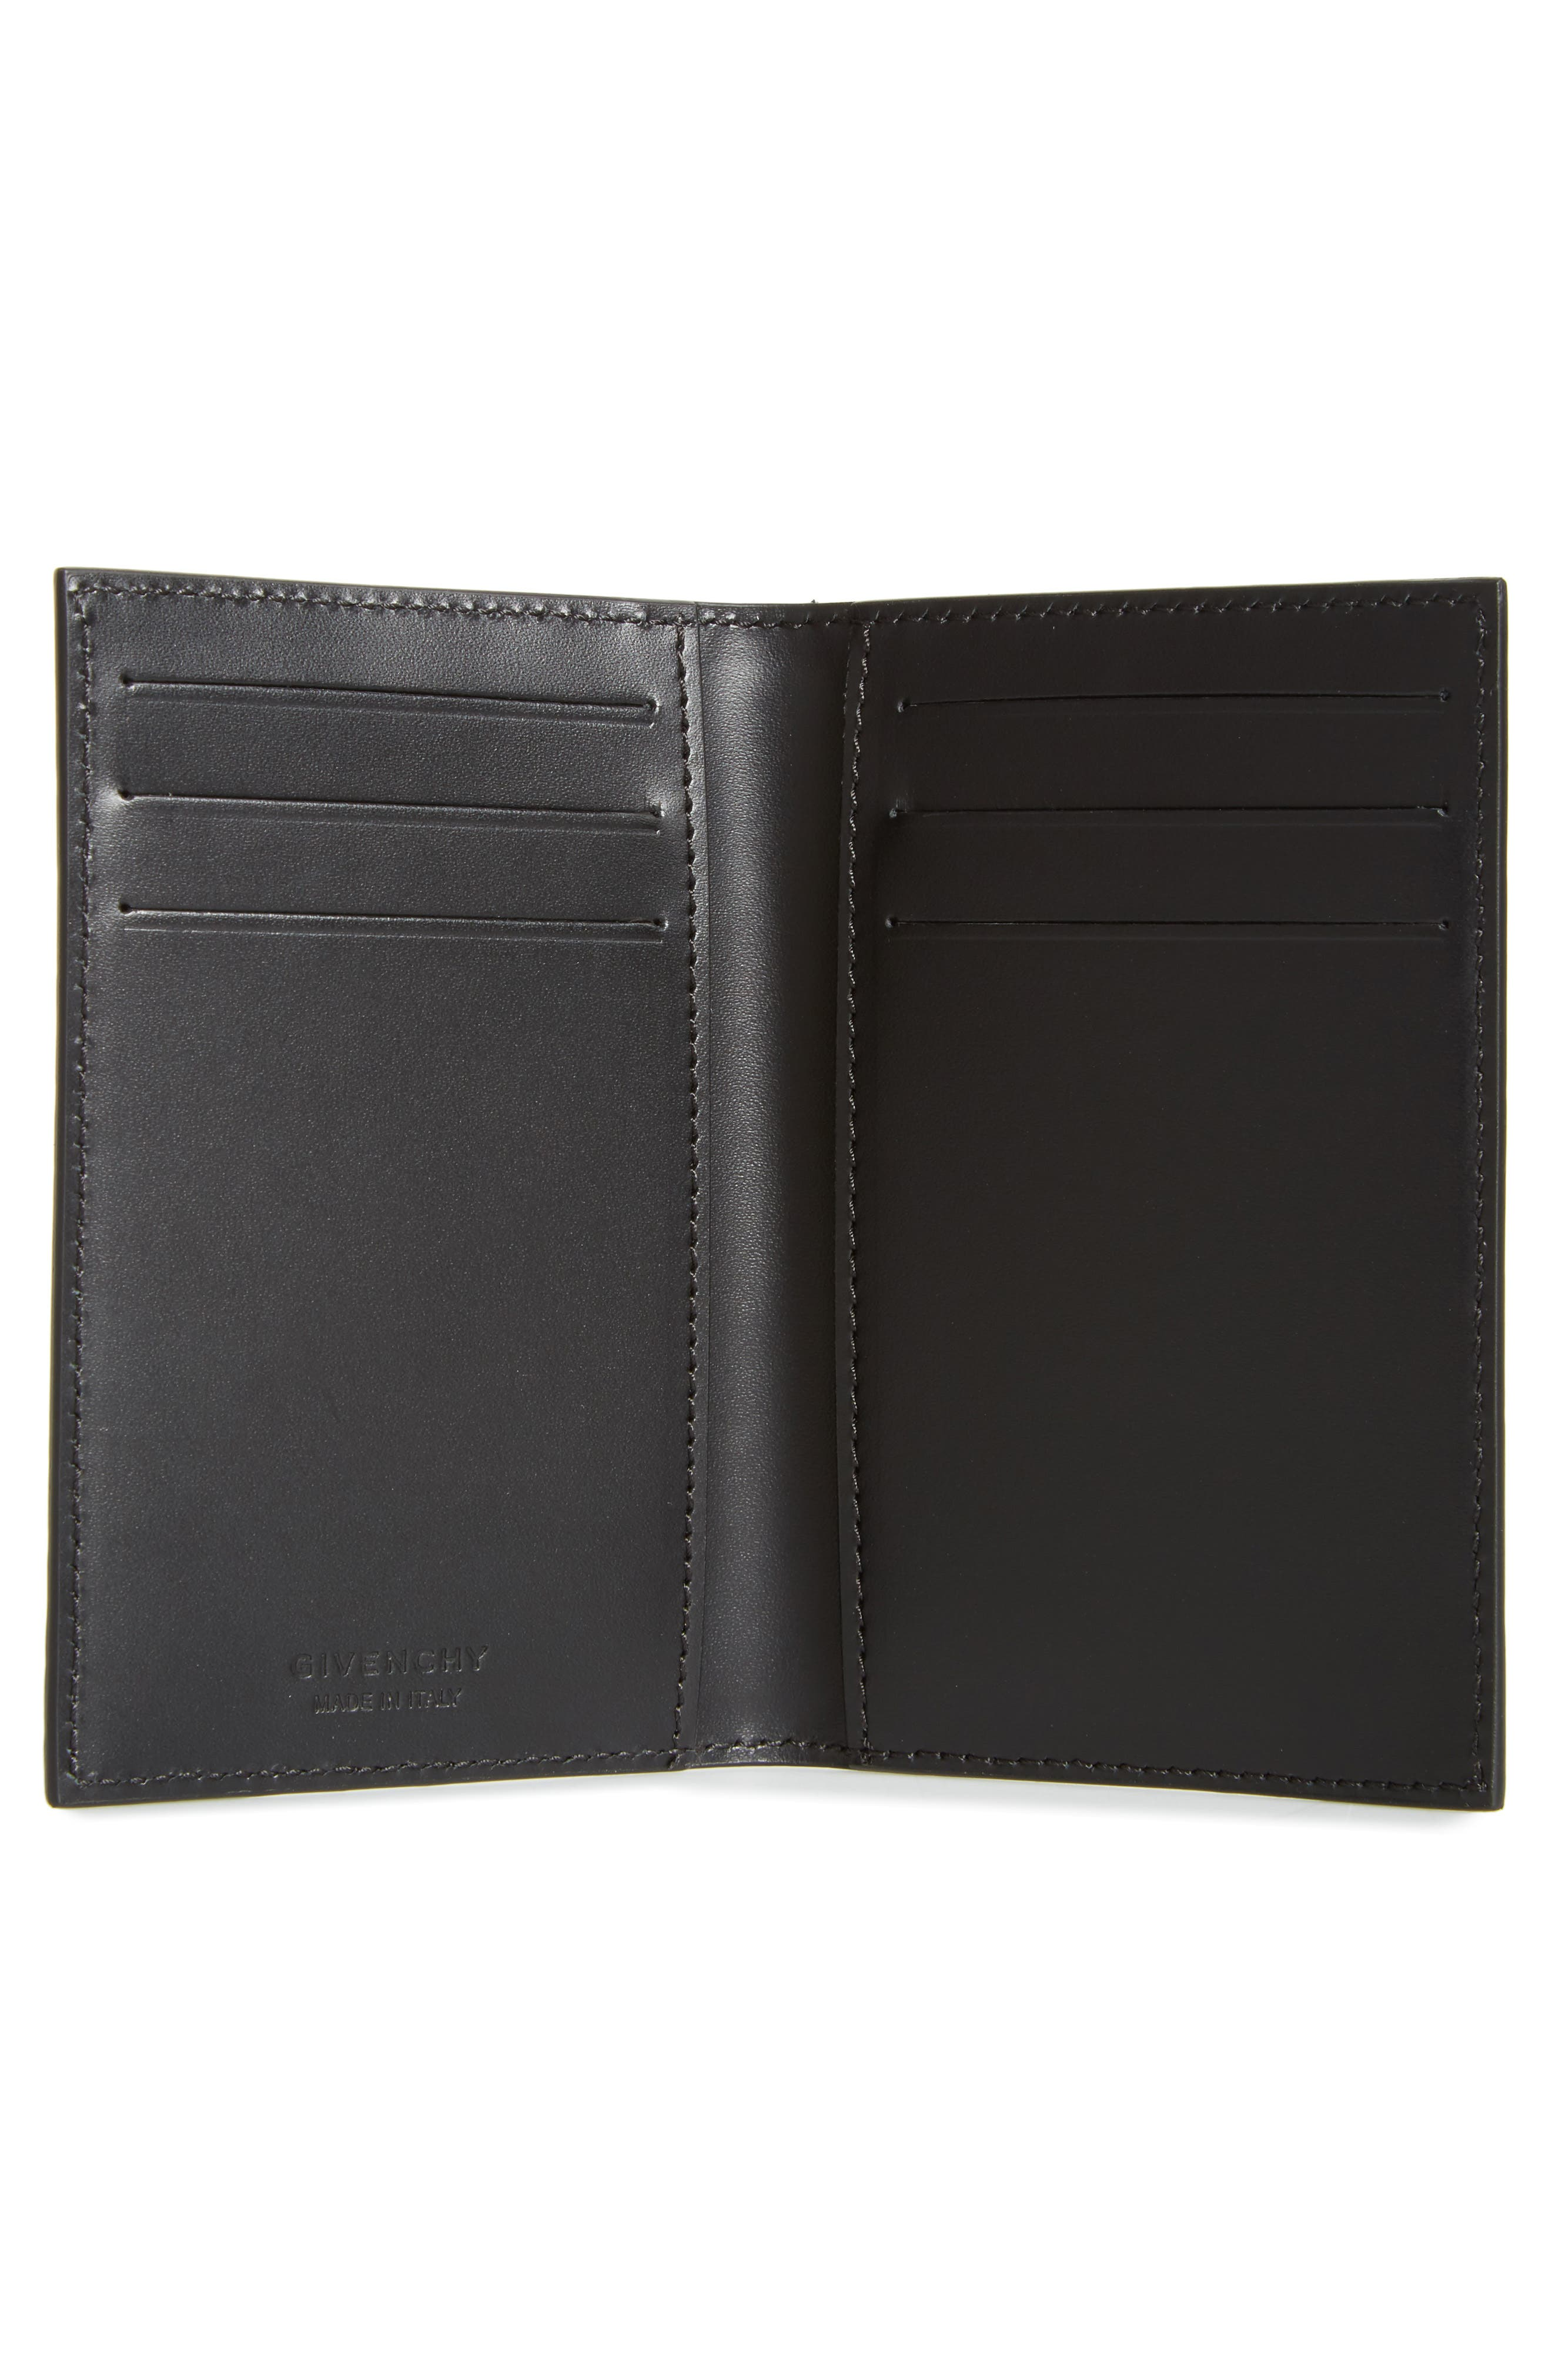 Alternate Image 2  - Givenchy Tall Leather Billfold Wallet